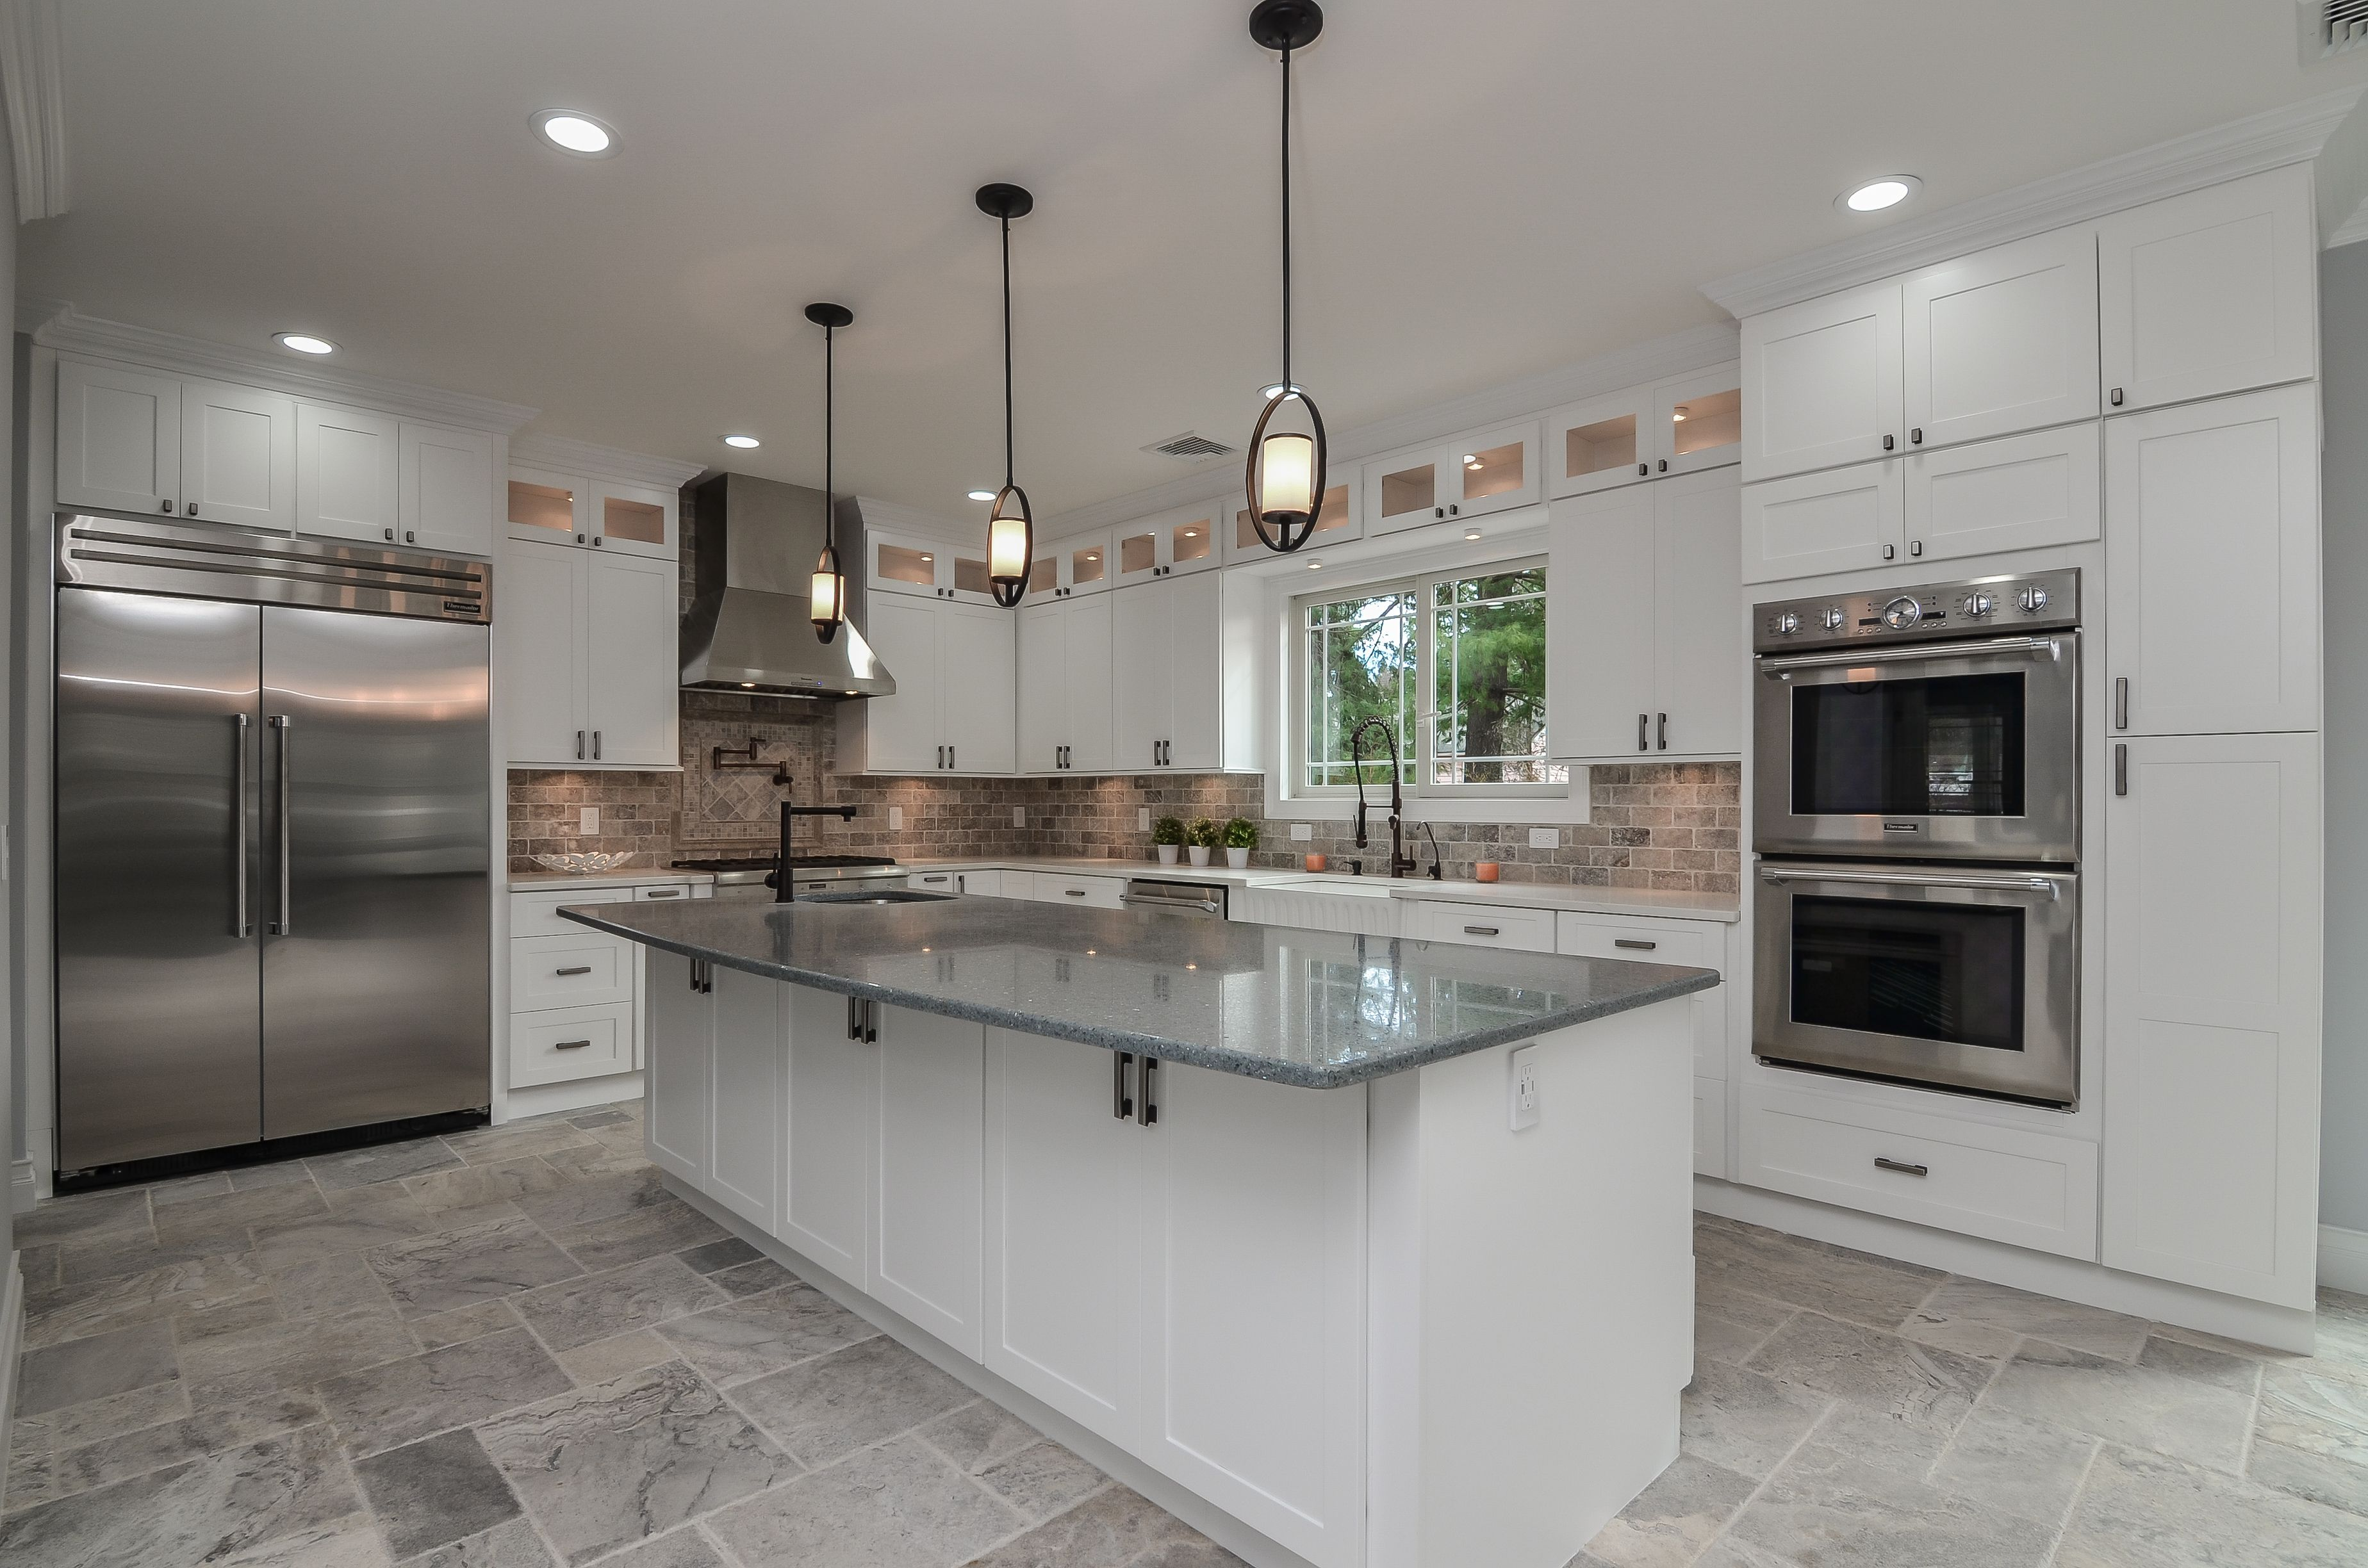 Kitchen With 10 Foot Center Island With Sink Professional Thermador Appliances Home Appliances Appliances Design Kitchen Aid Appliances